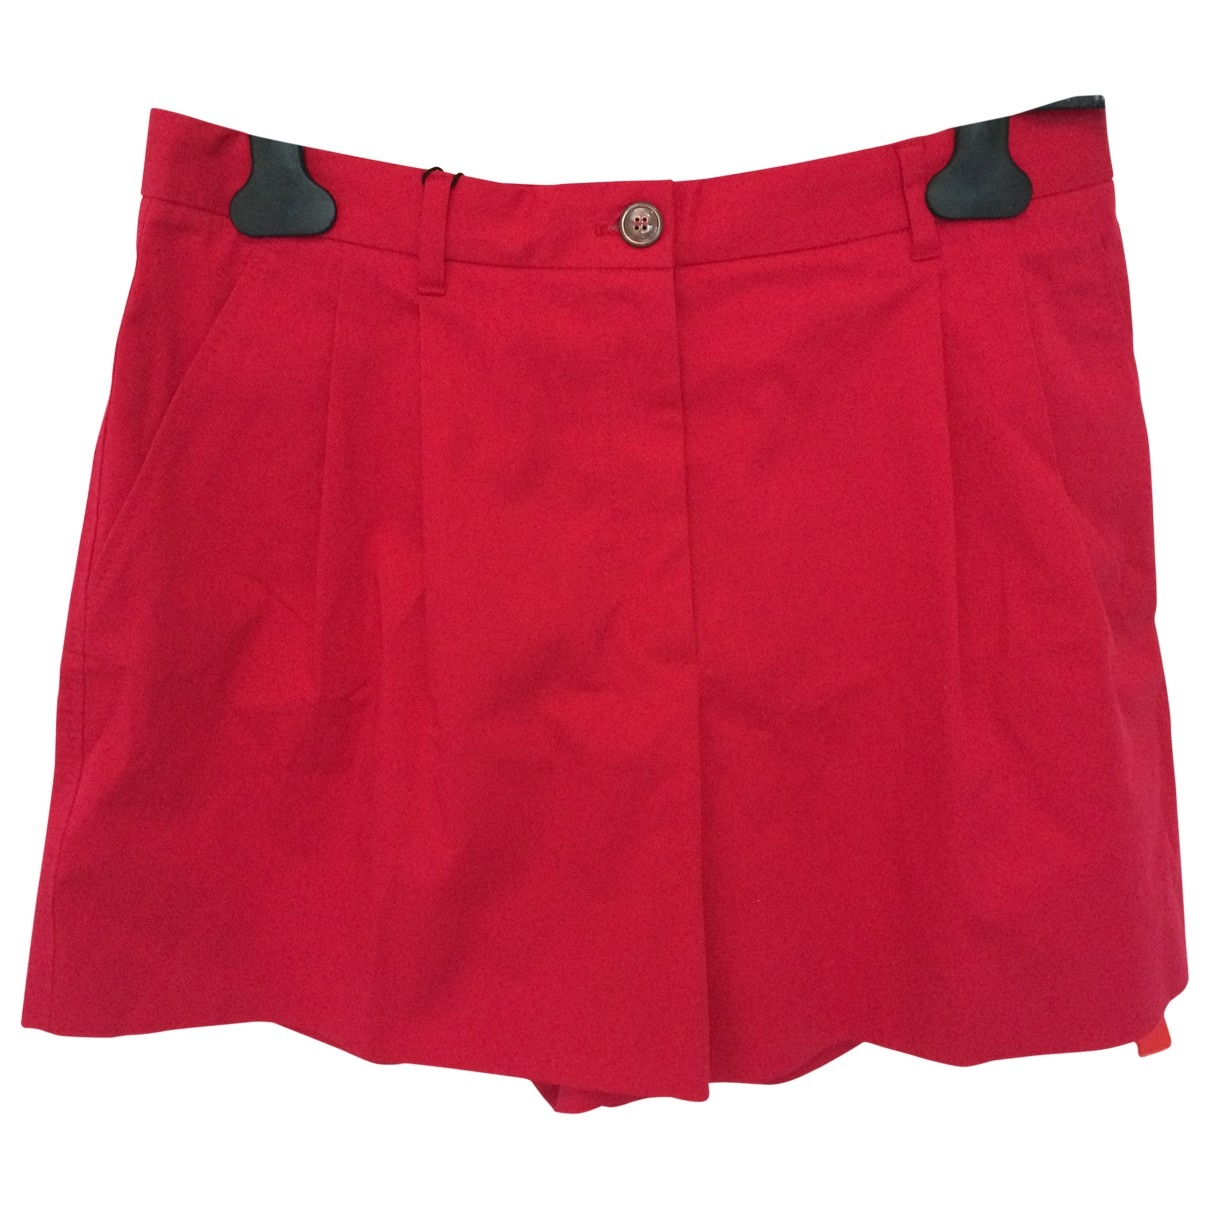 Dolce & Gabbana \N Red Cotton Shorts for Women M International